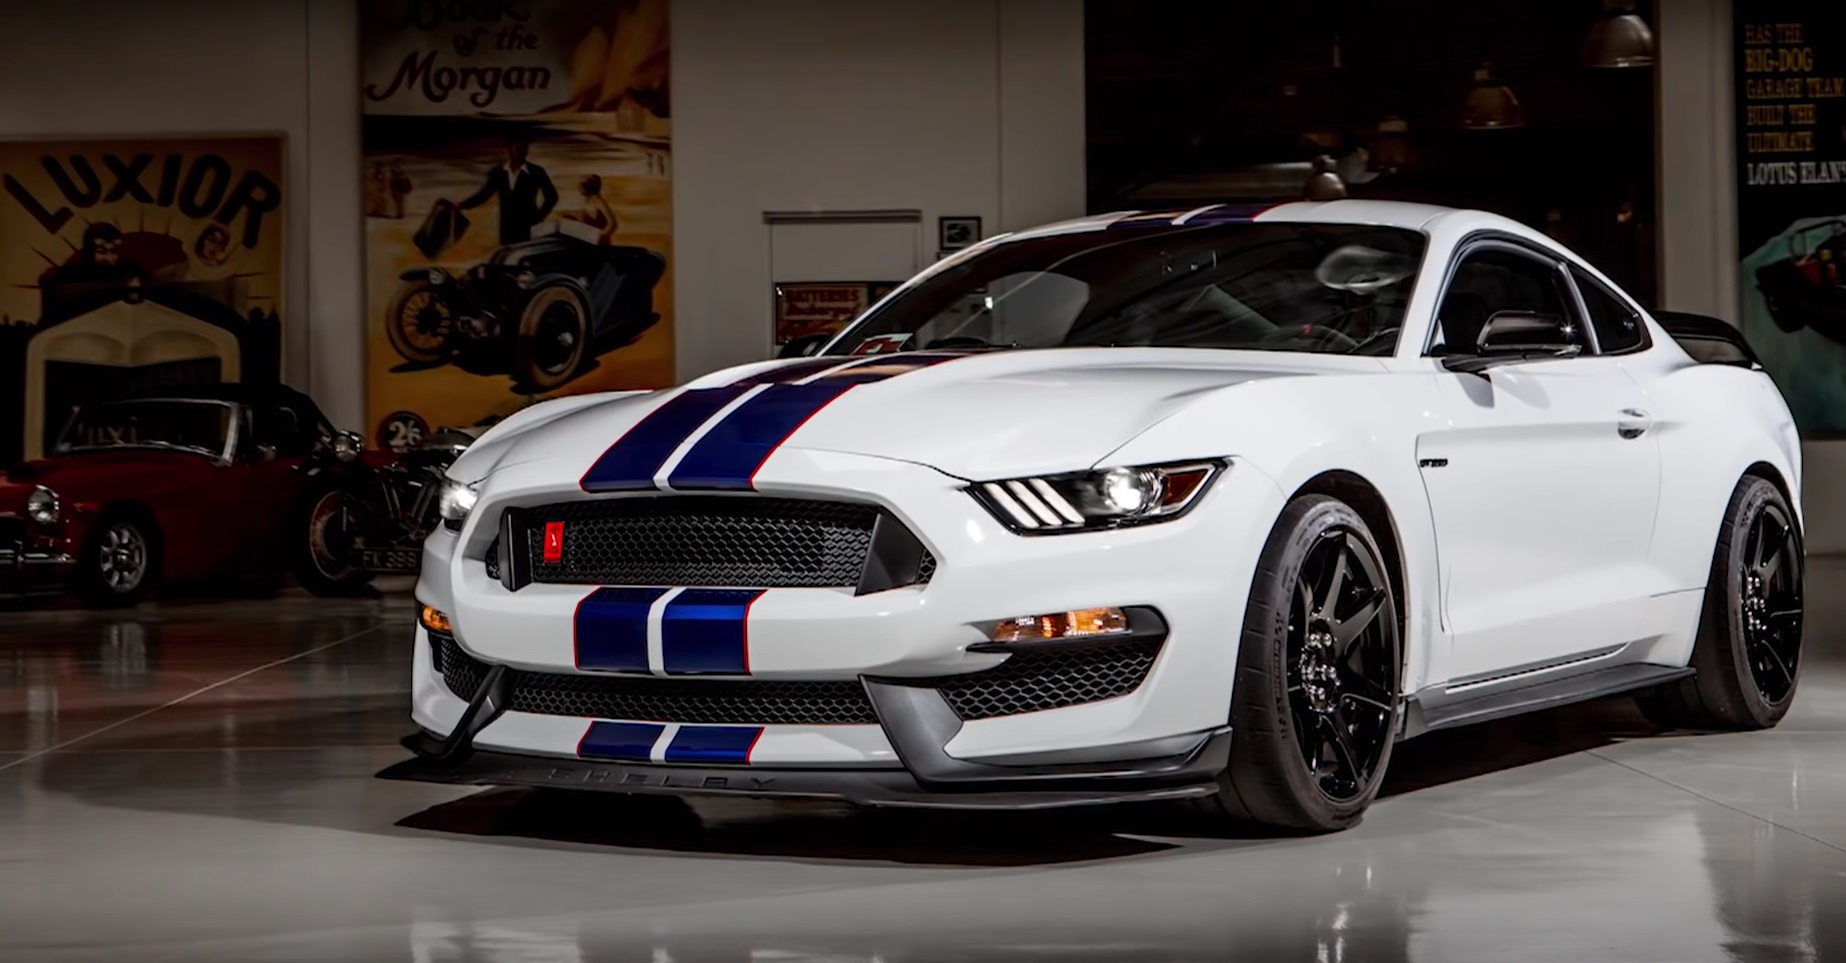 Video: 2015 Ford Mustang Shelby GT350R - Jay Leno's Garage